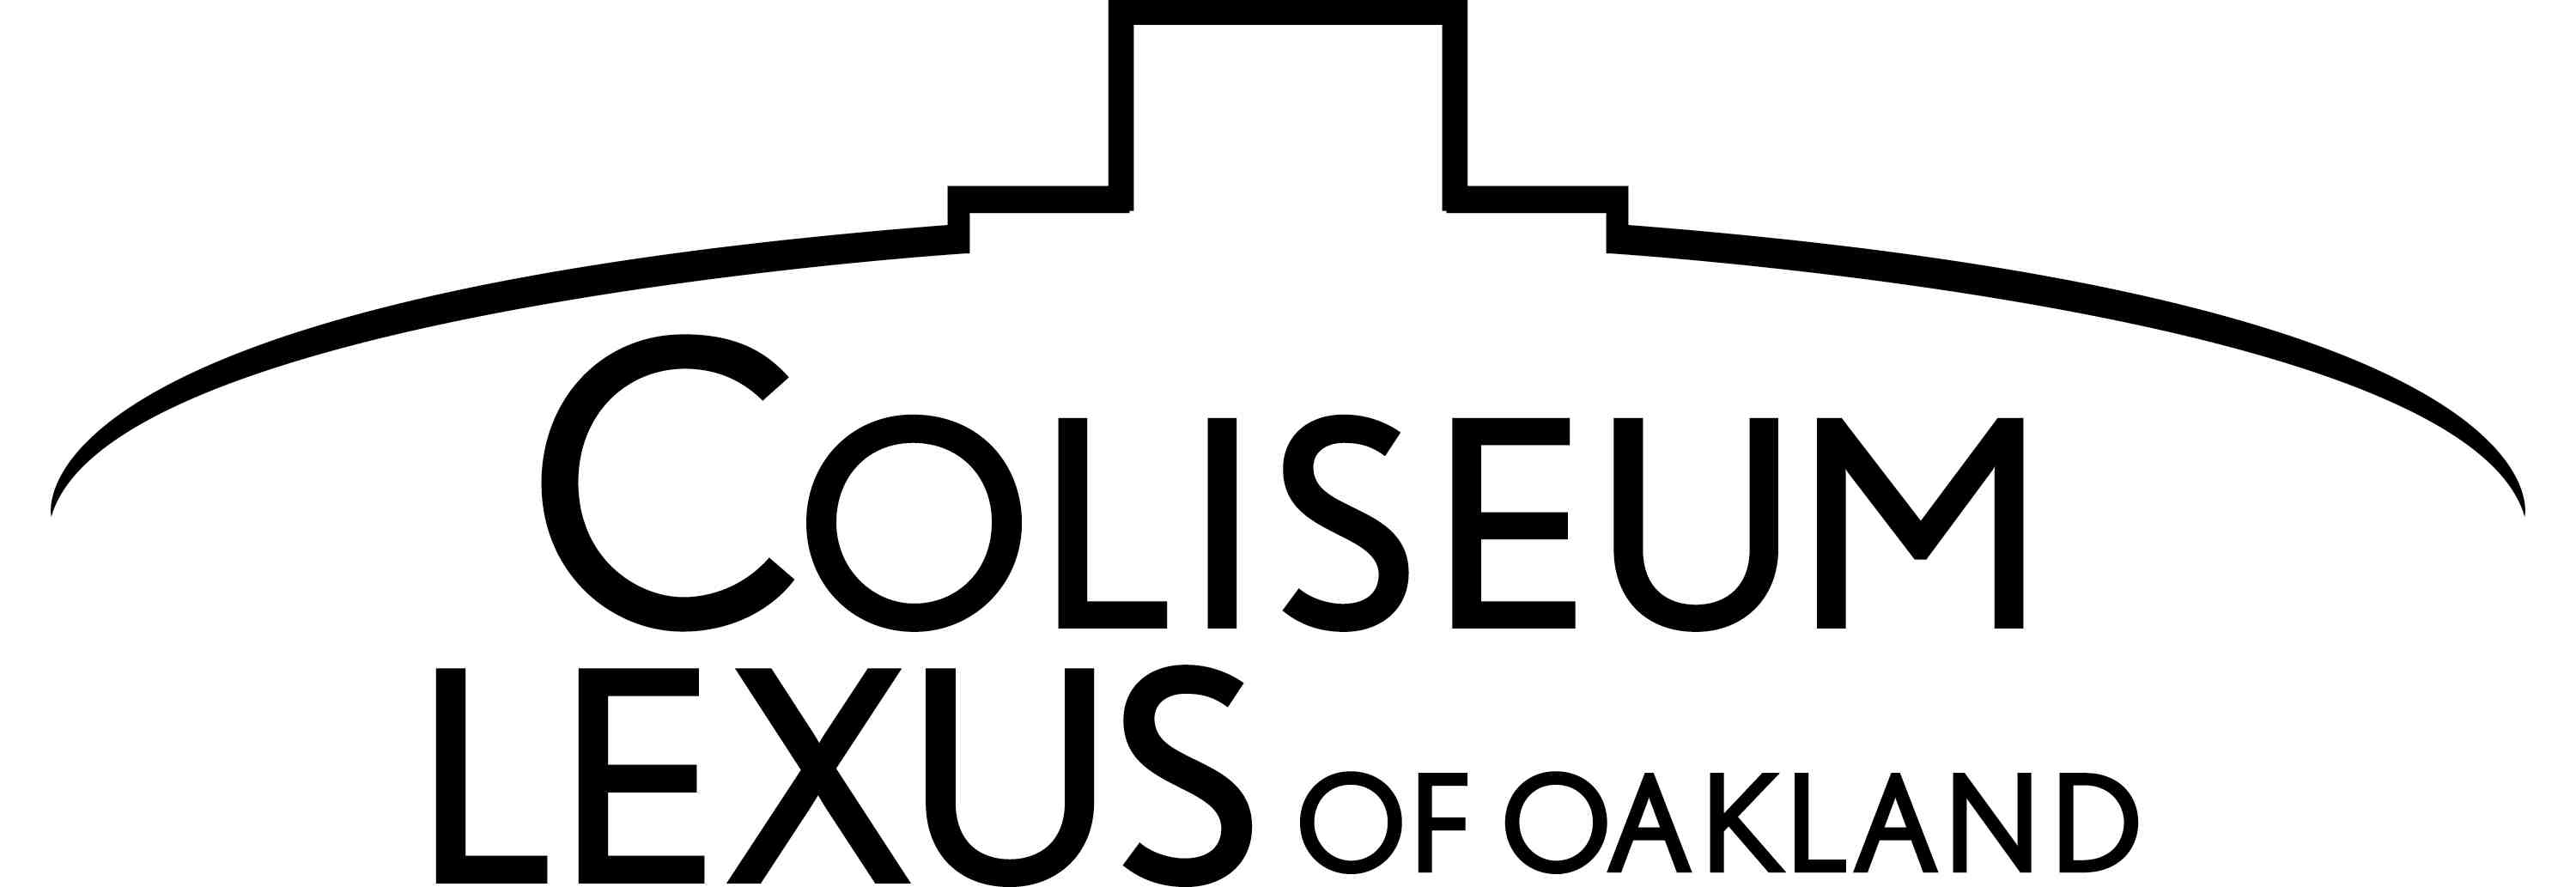 Coliseum Lexus of Oakland